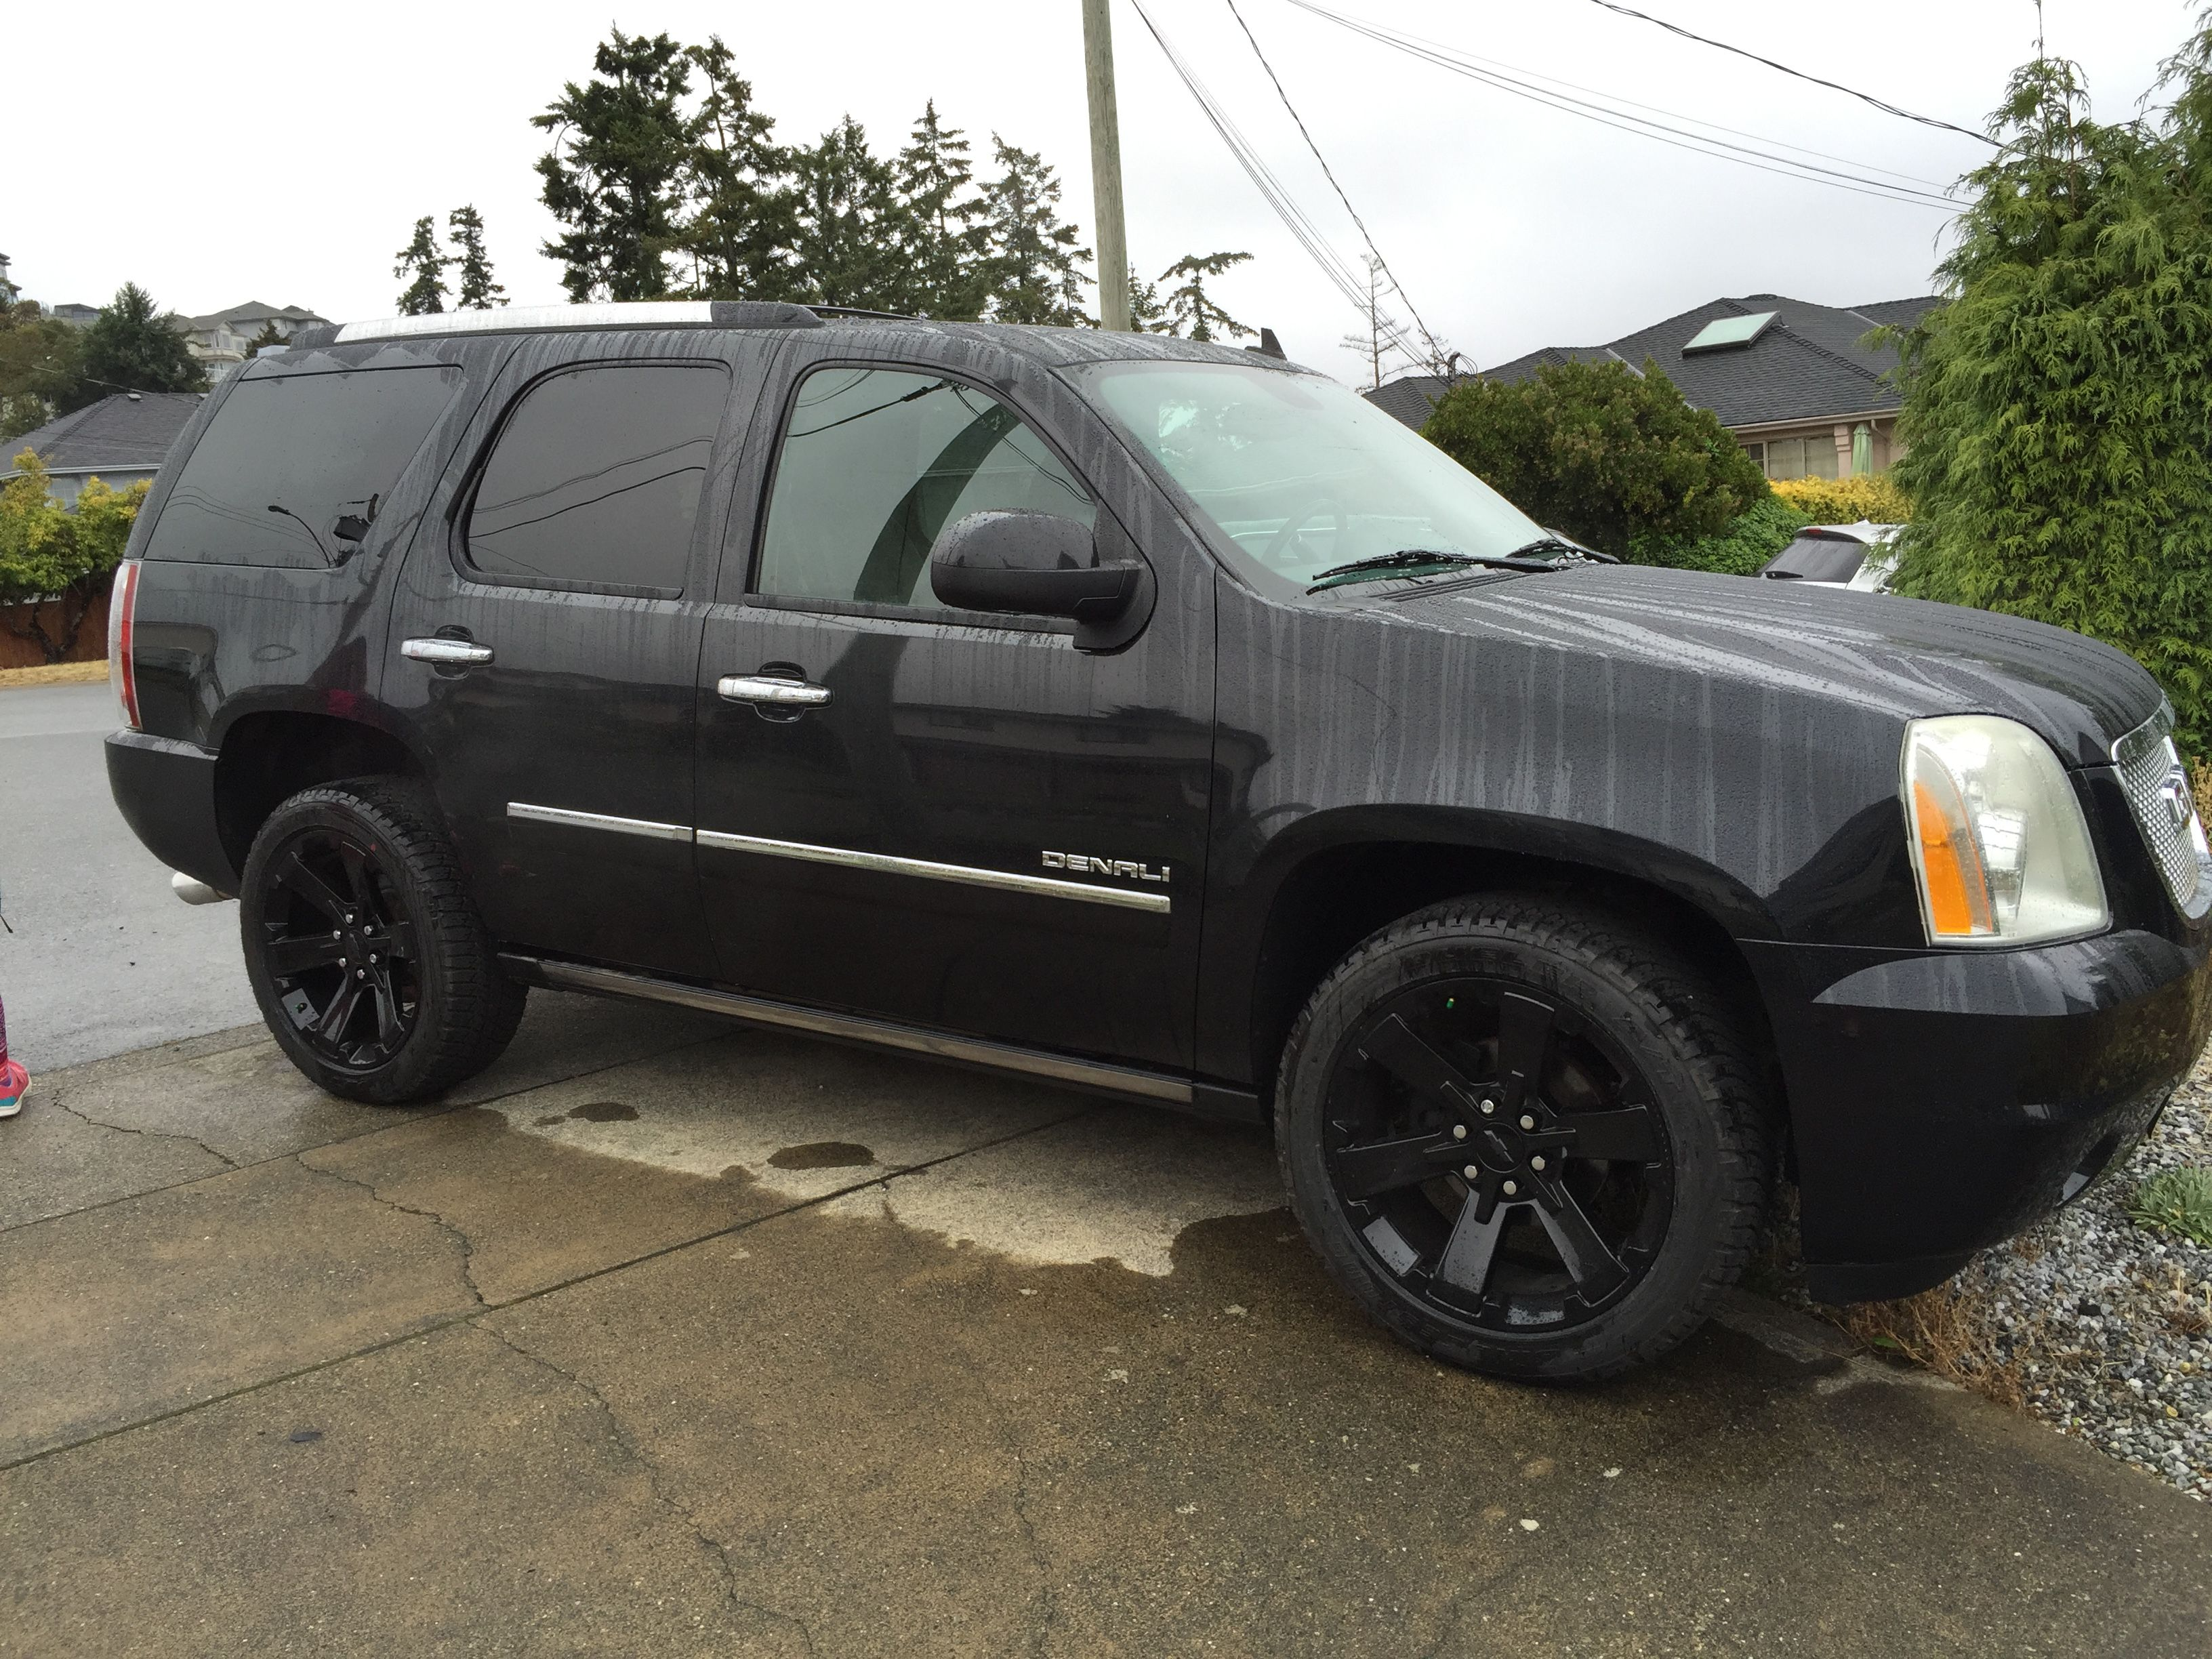 The Official Blacked Out Tahoe Yukon Picture Thread Chevy Tahoe